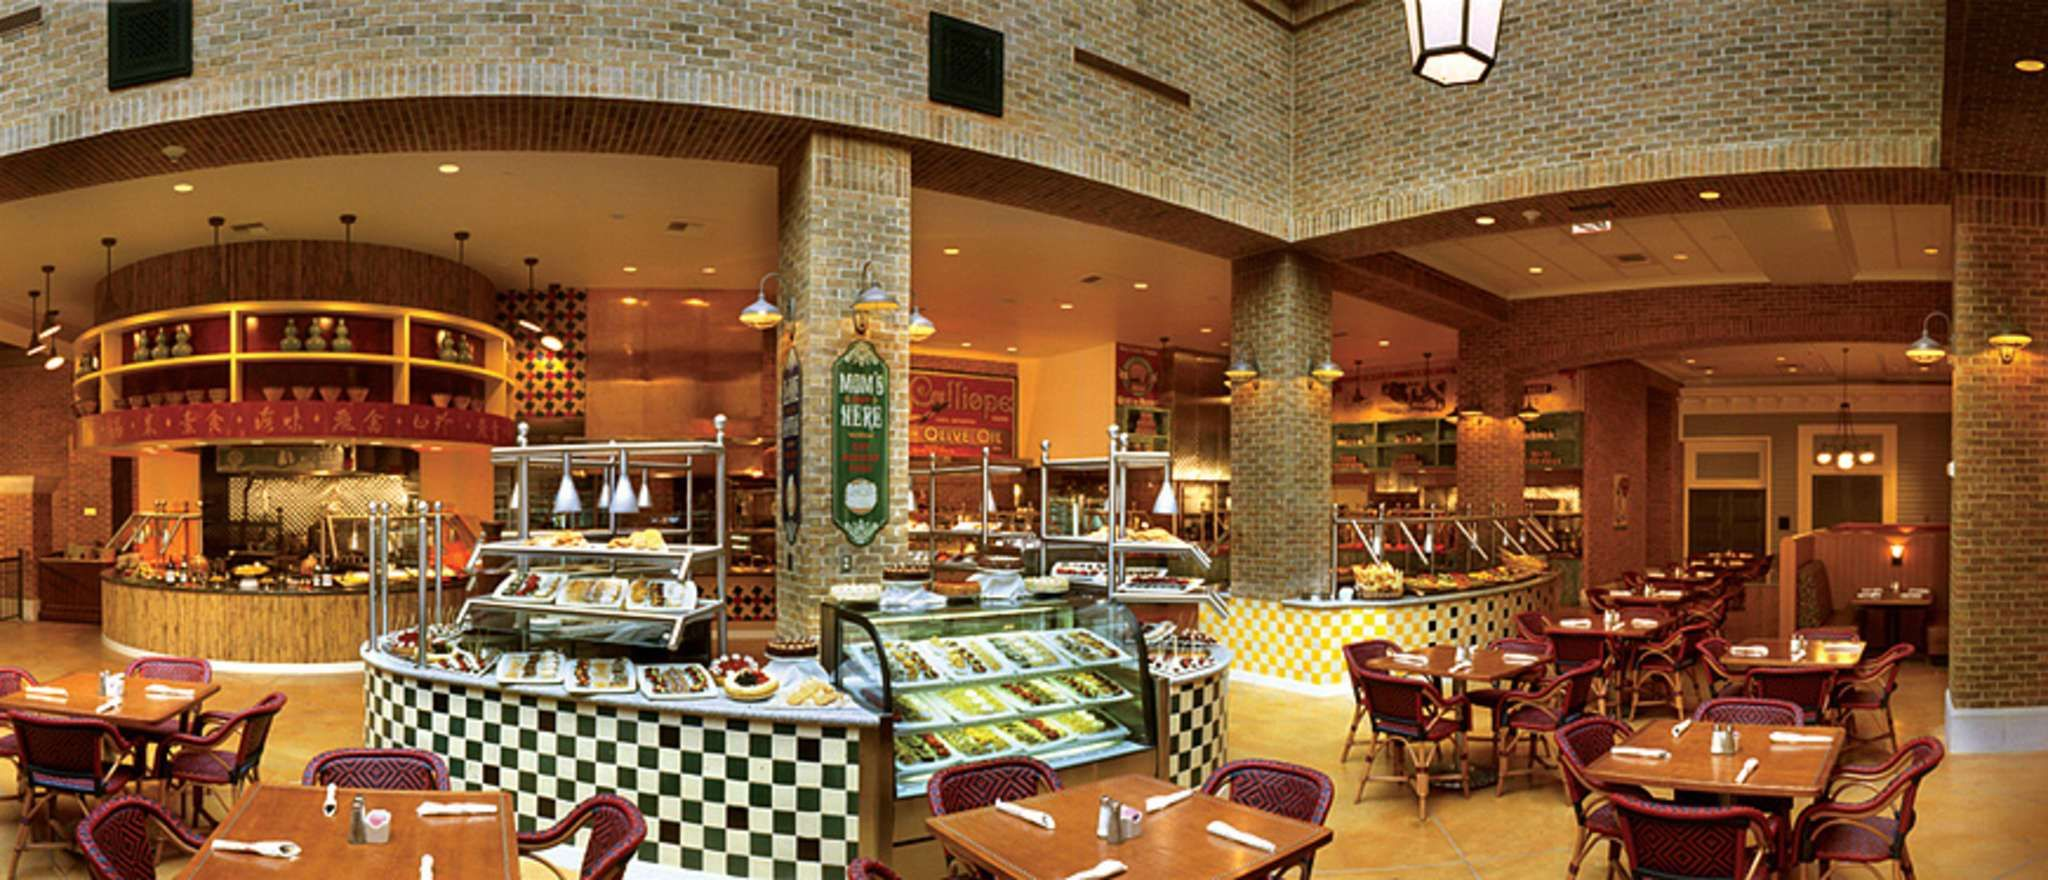 Excellent Ameristar Vicksburg Buffet Coupons Coupons For Ameristar Home Interior And Landscaping Ferensignezvosmurscom